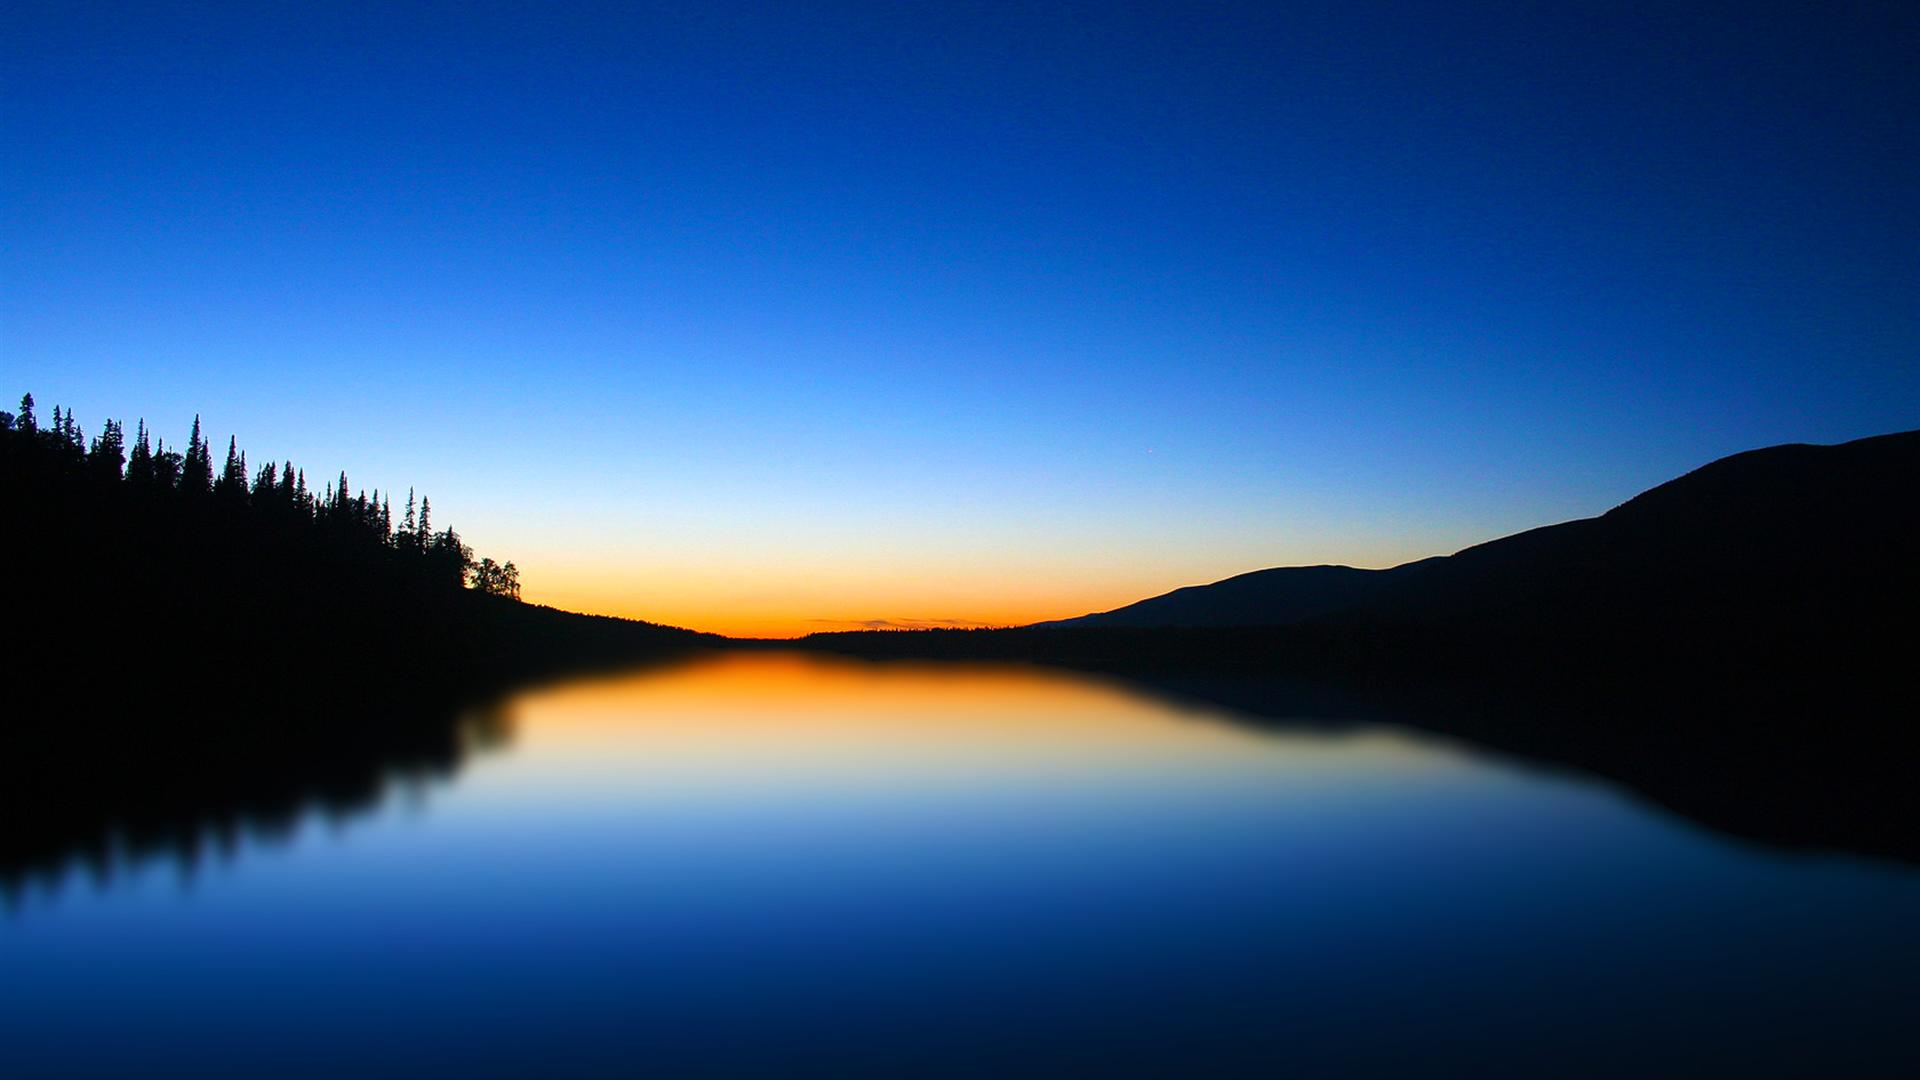 1920x1080 Hd Blue lake scenic wallpaper for windows wide wallpapers:1280x800,1440x900,1680x1050